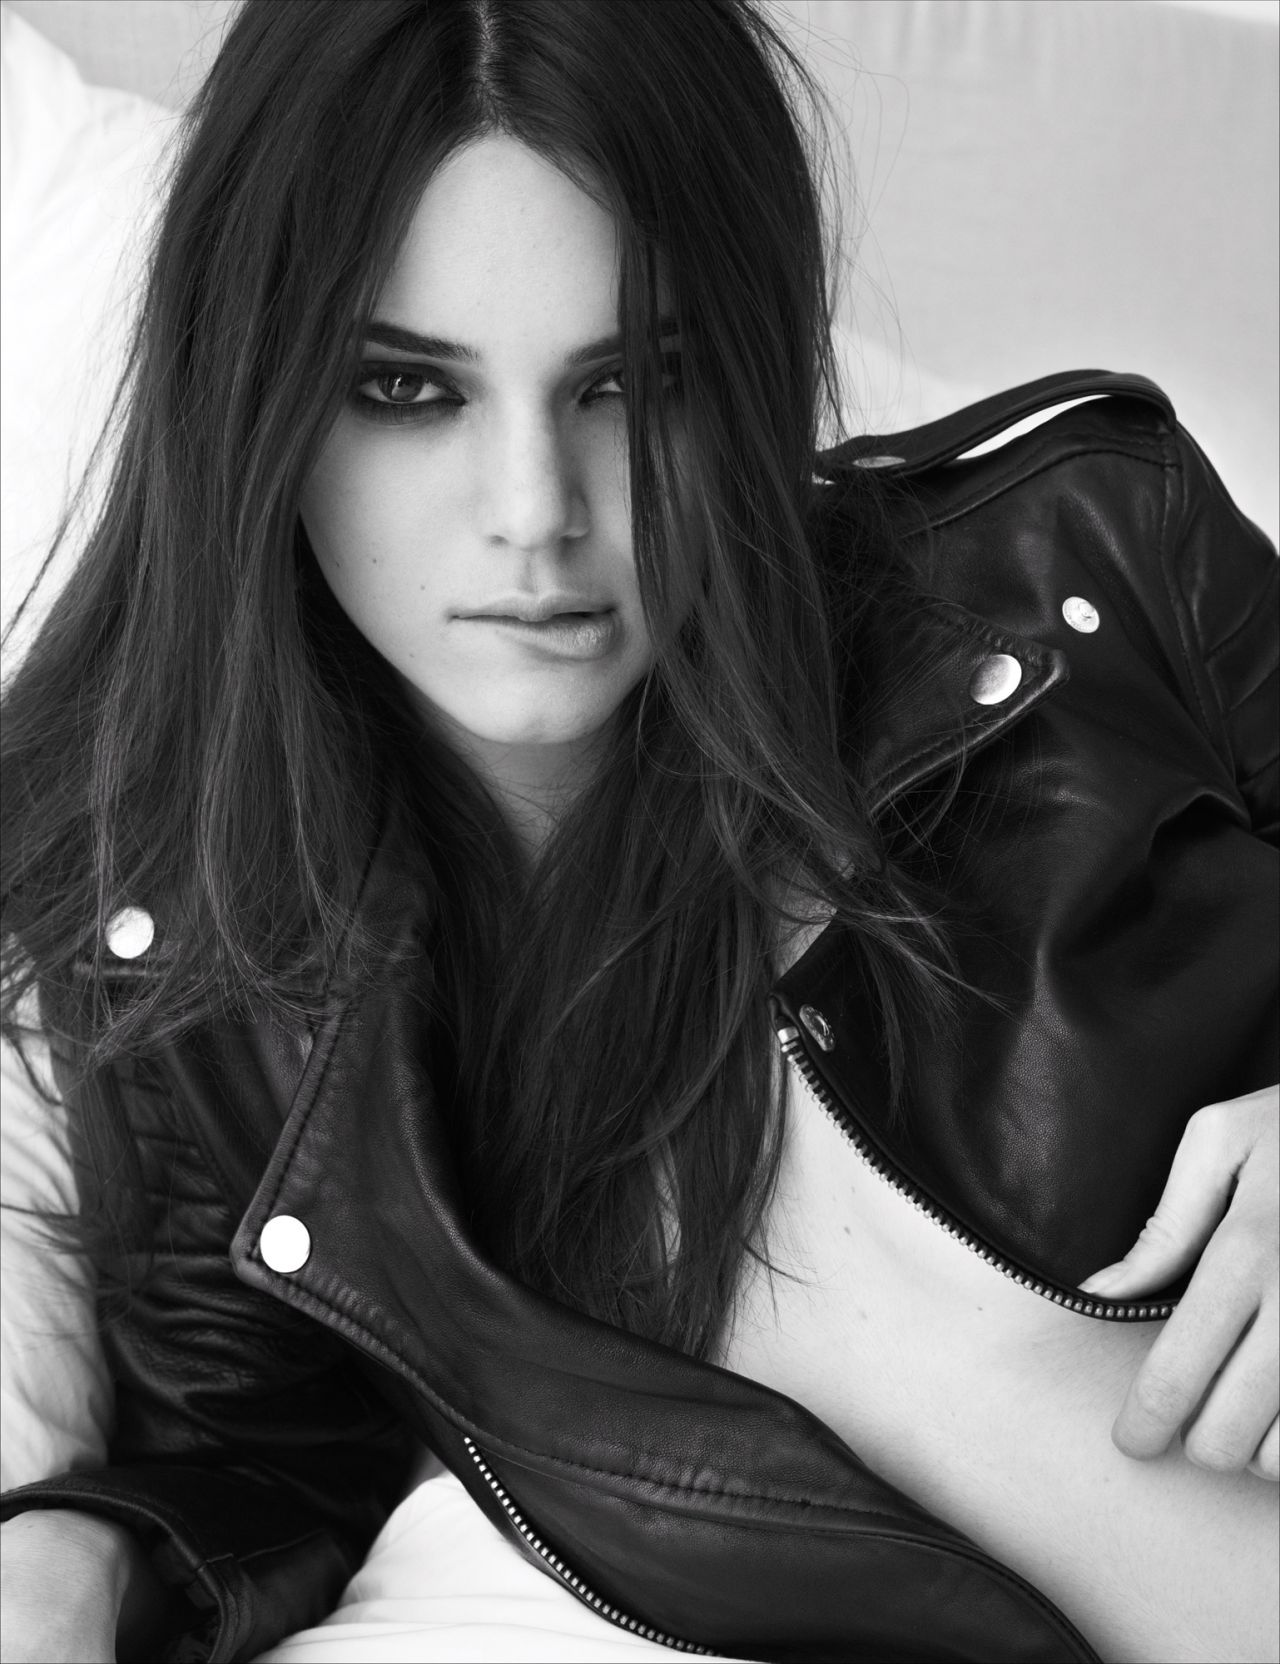 Kendall Jenner in W Magazine, March 2014 - Braless with Open Leather jacket in